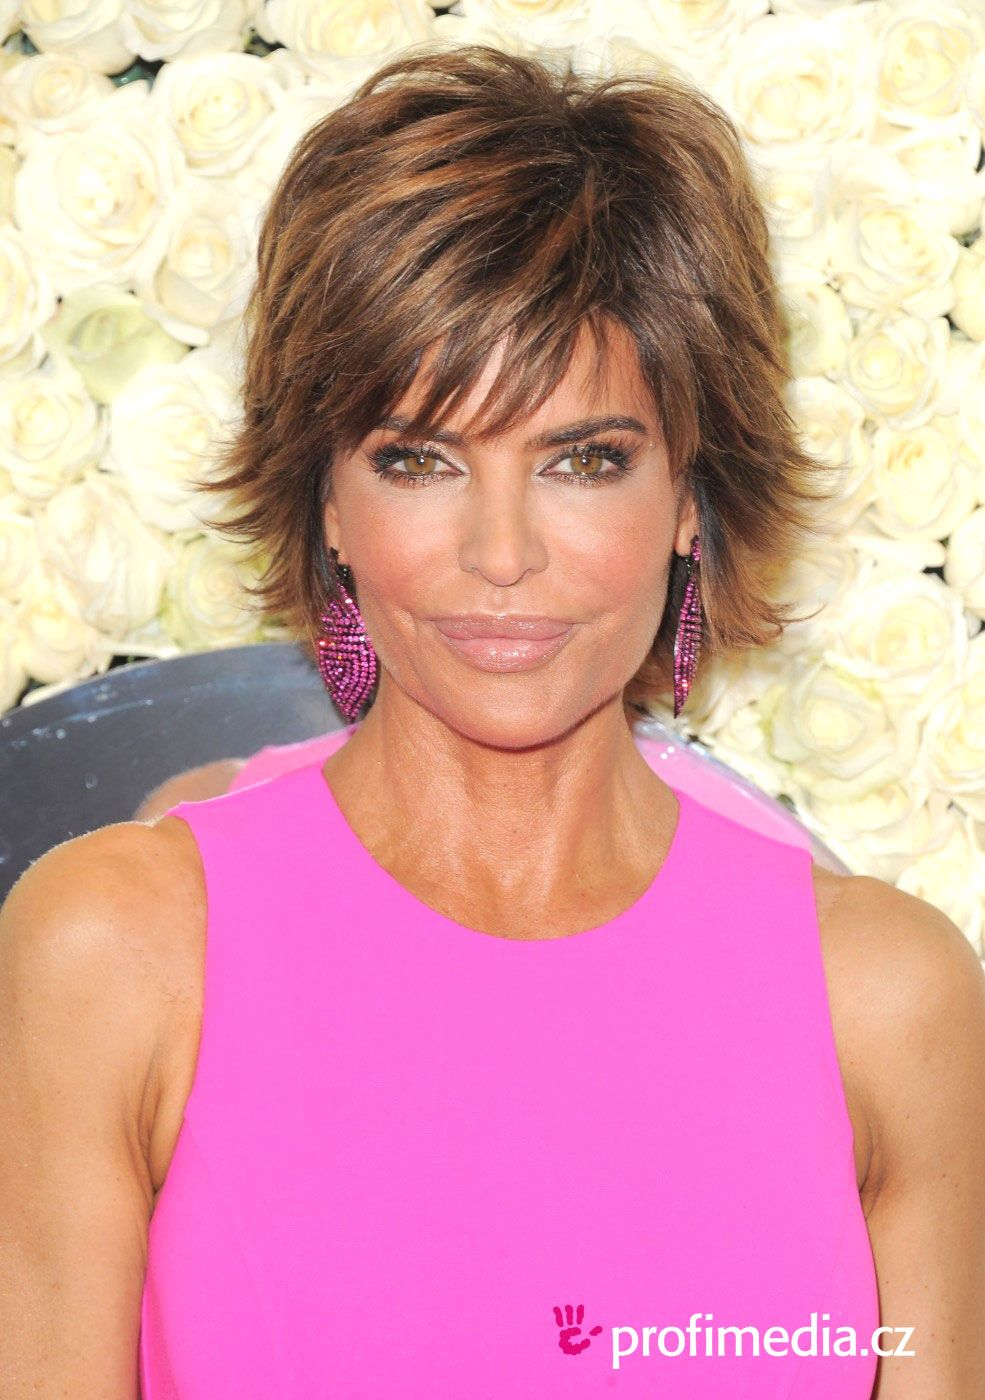 Lisa Rinna Hairstyle : Simple Hairstyle Ideas For Women and Man - Lisa Rinna Hairstyle : Simple Hairstyle Ideas For Women And Man